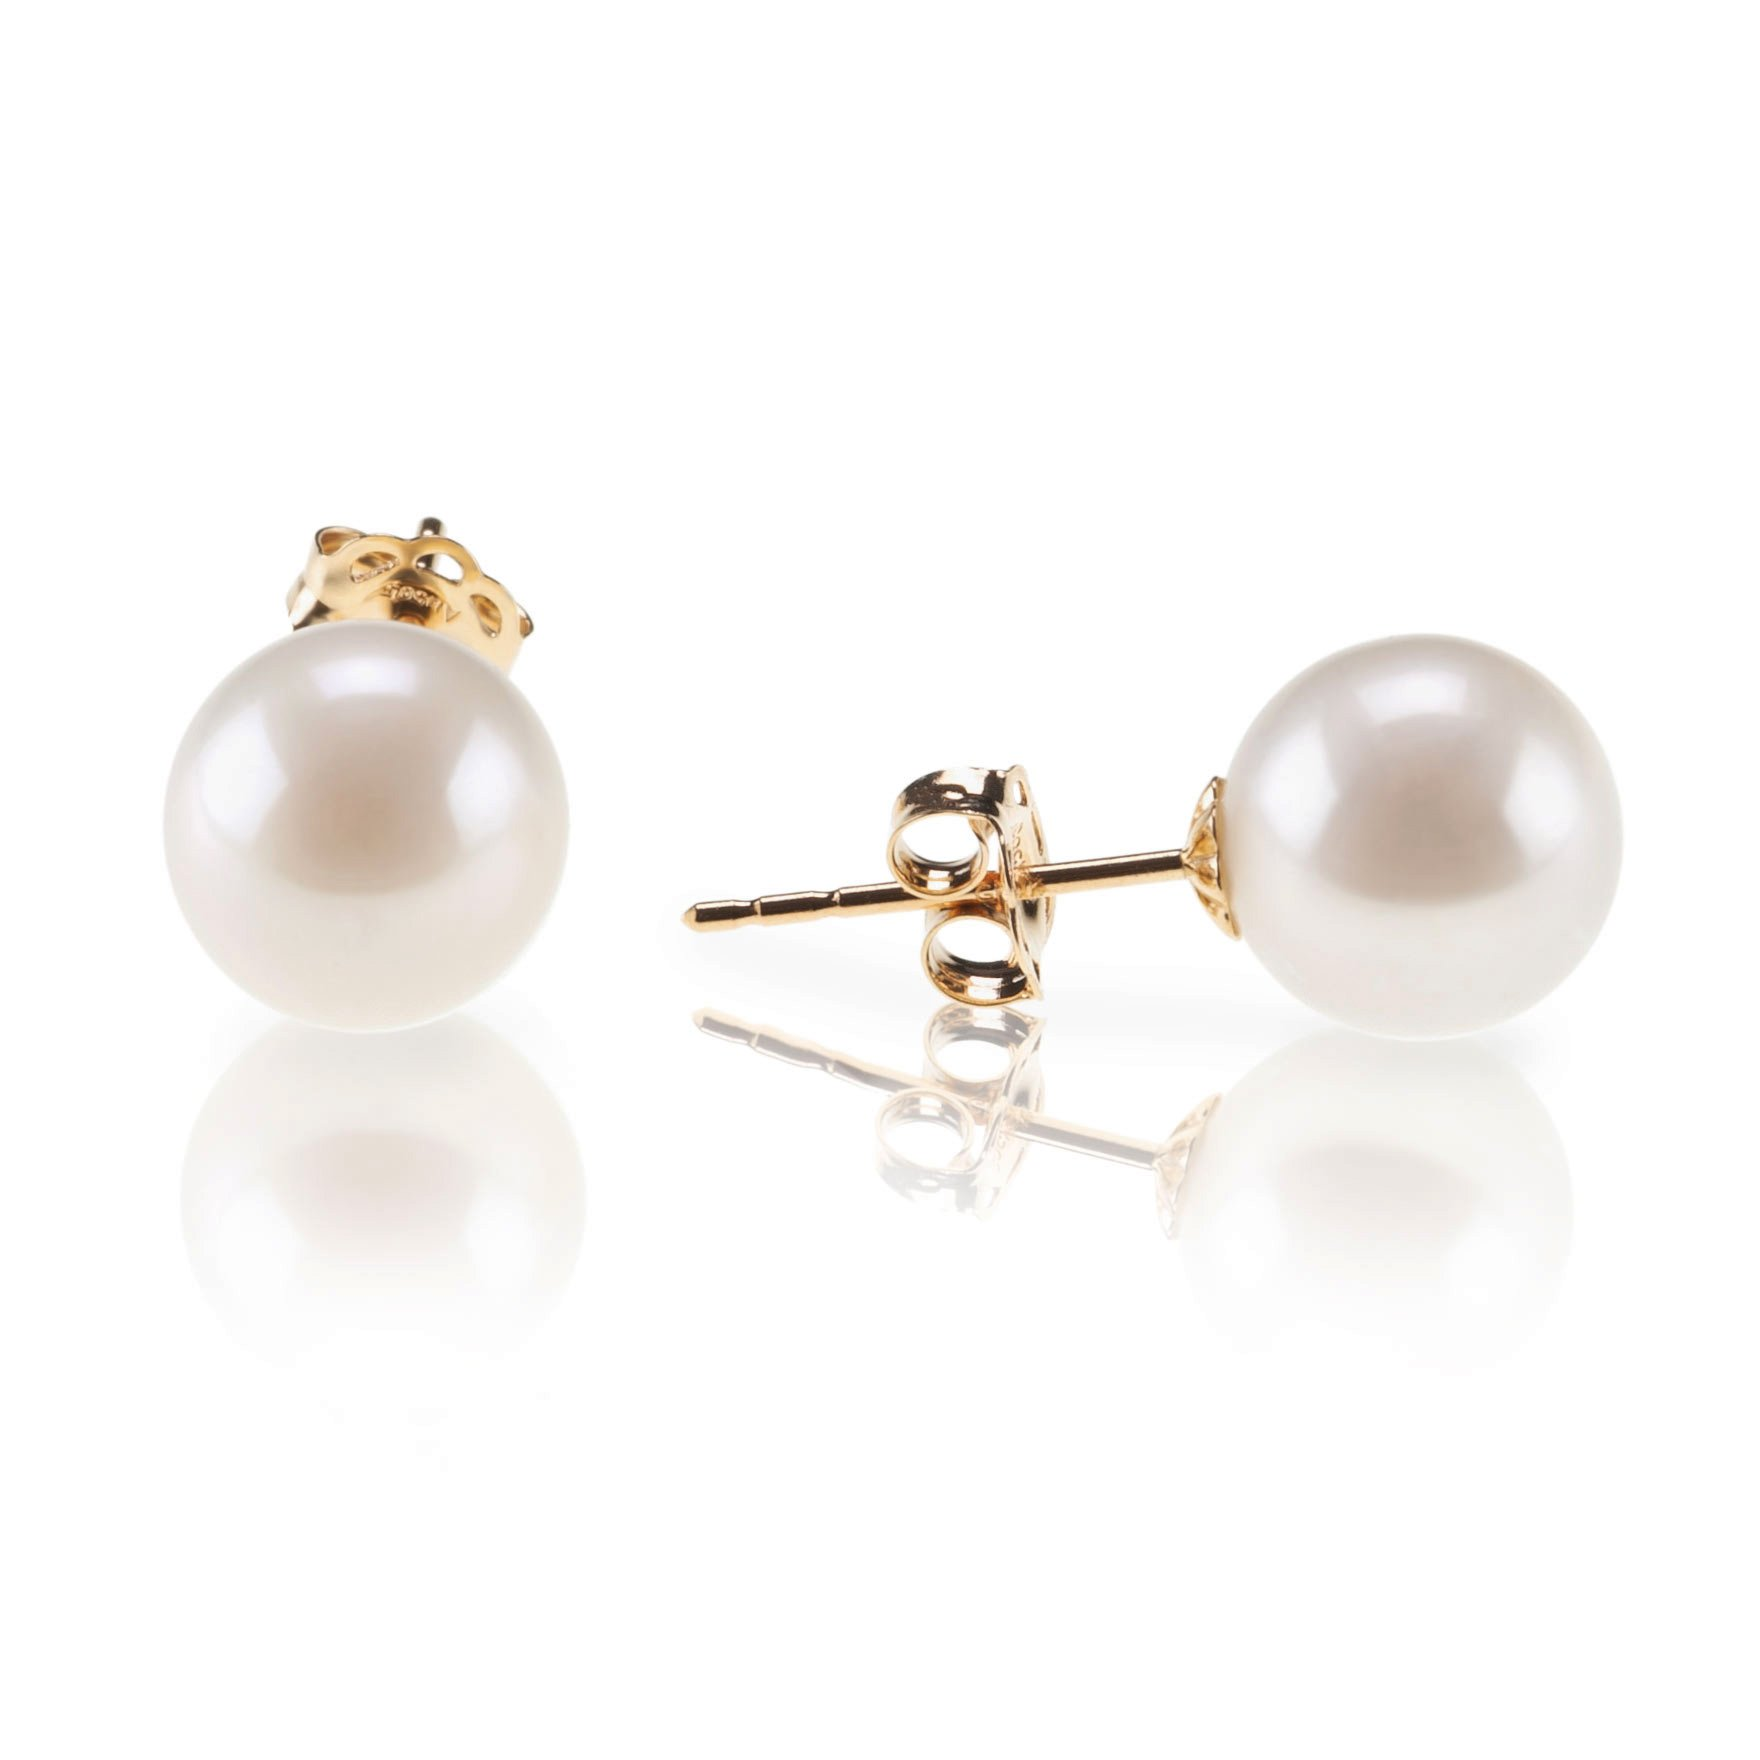 PAVOI 18K Yellow Gold Plated Sterling Silver Round Stud White Simulated Shell Pearl Earrings - 8mm by PAVOI